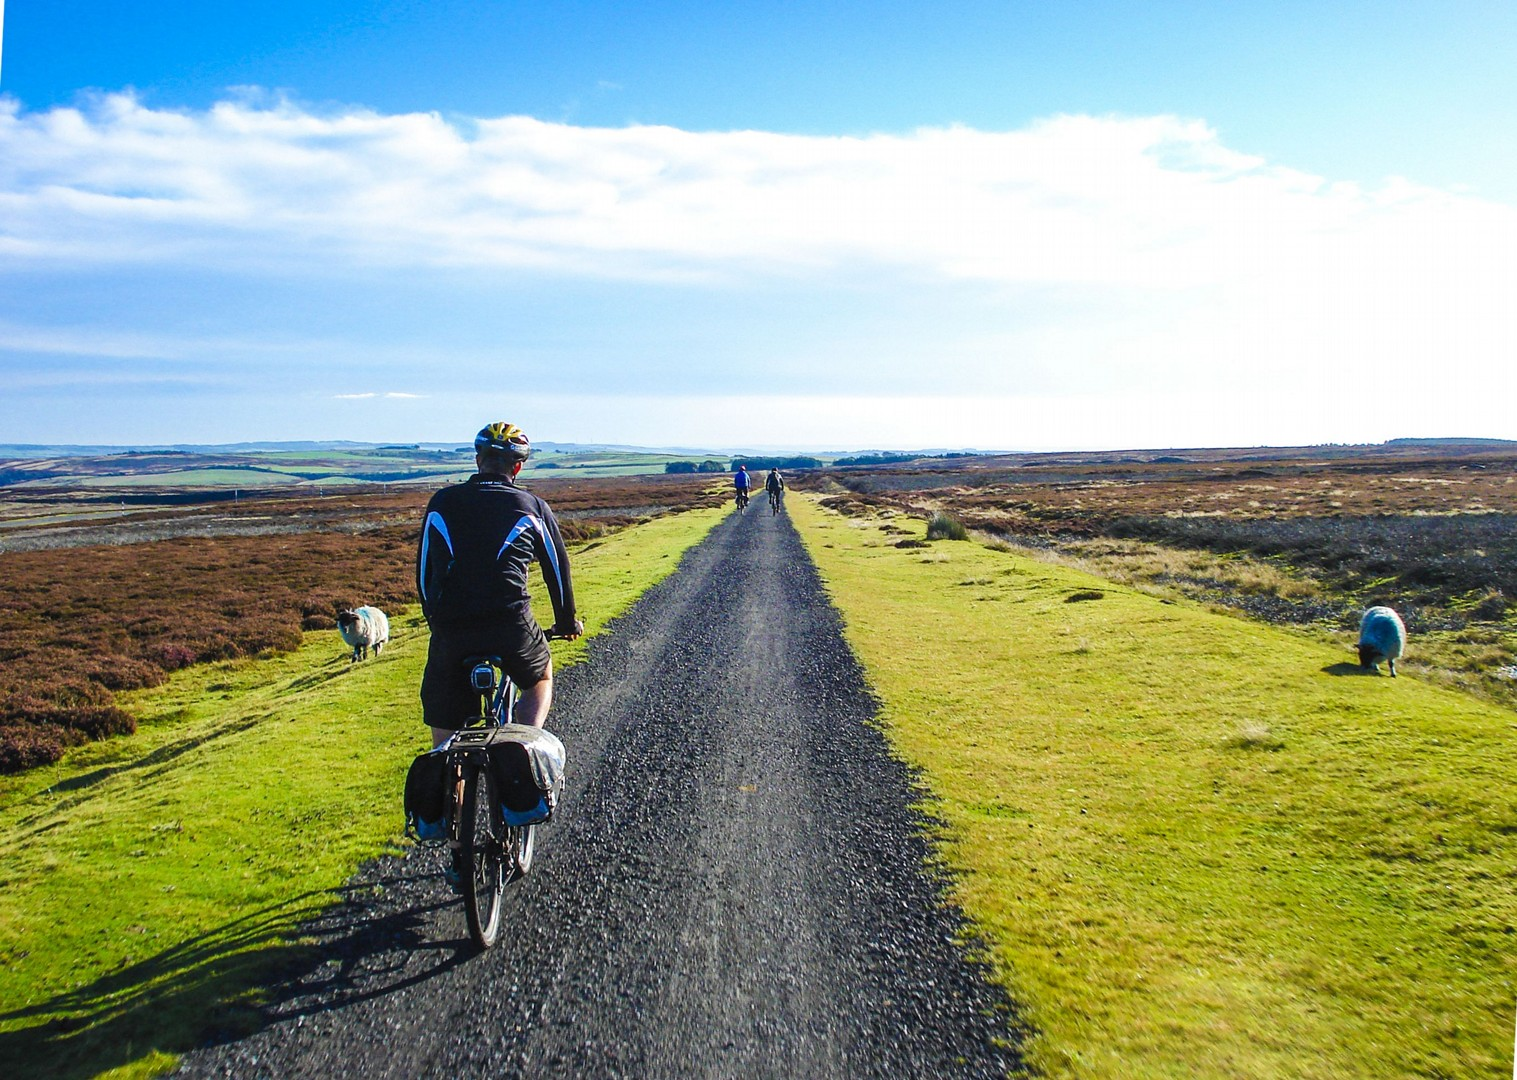 cycle-paths-authentic-uk-britain-4-days-self-guided-tour.jpg - UK - C2C - Coast to Coast 4 Days Cycling - Self-Guided Leisure Cycling Holiday - Leisure Cycling